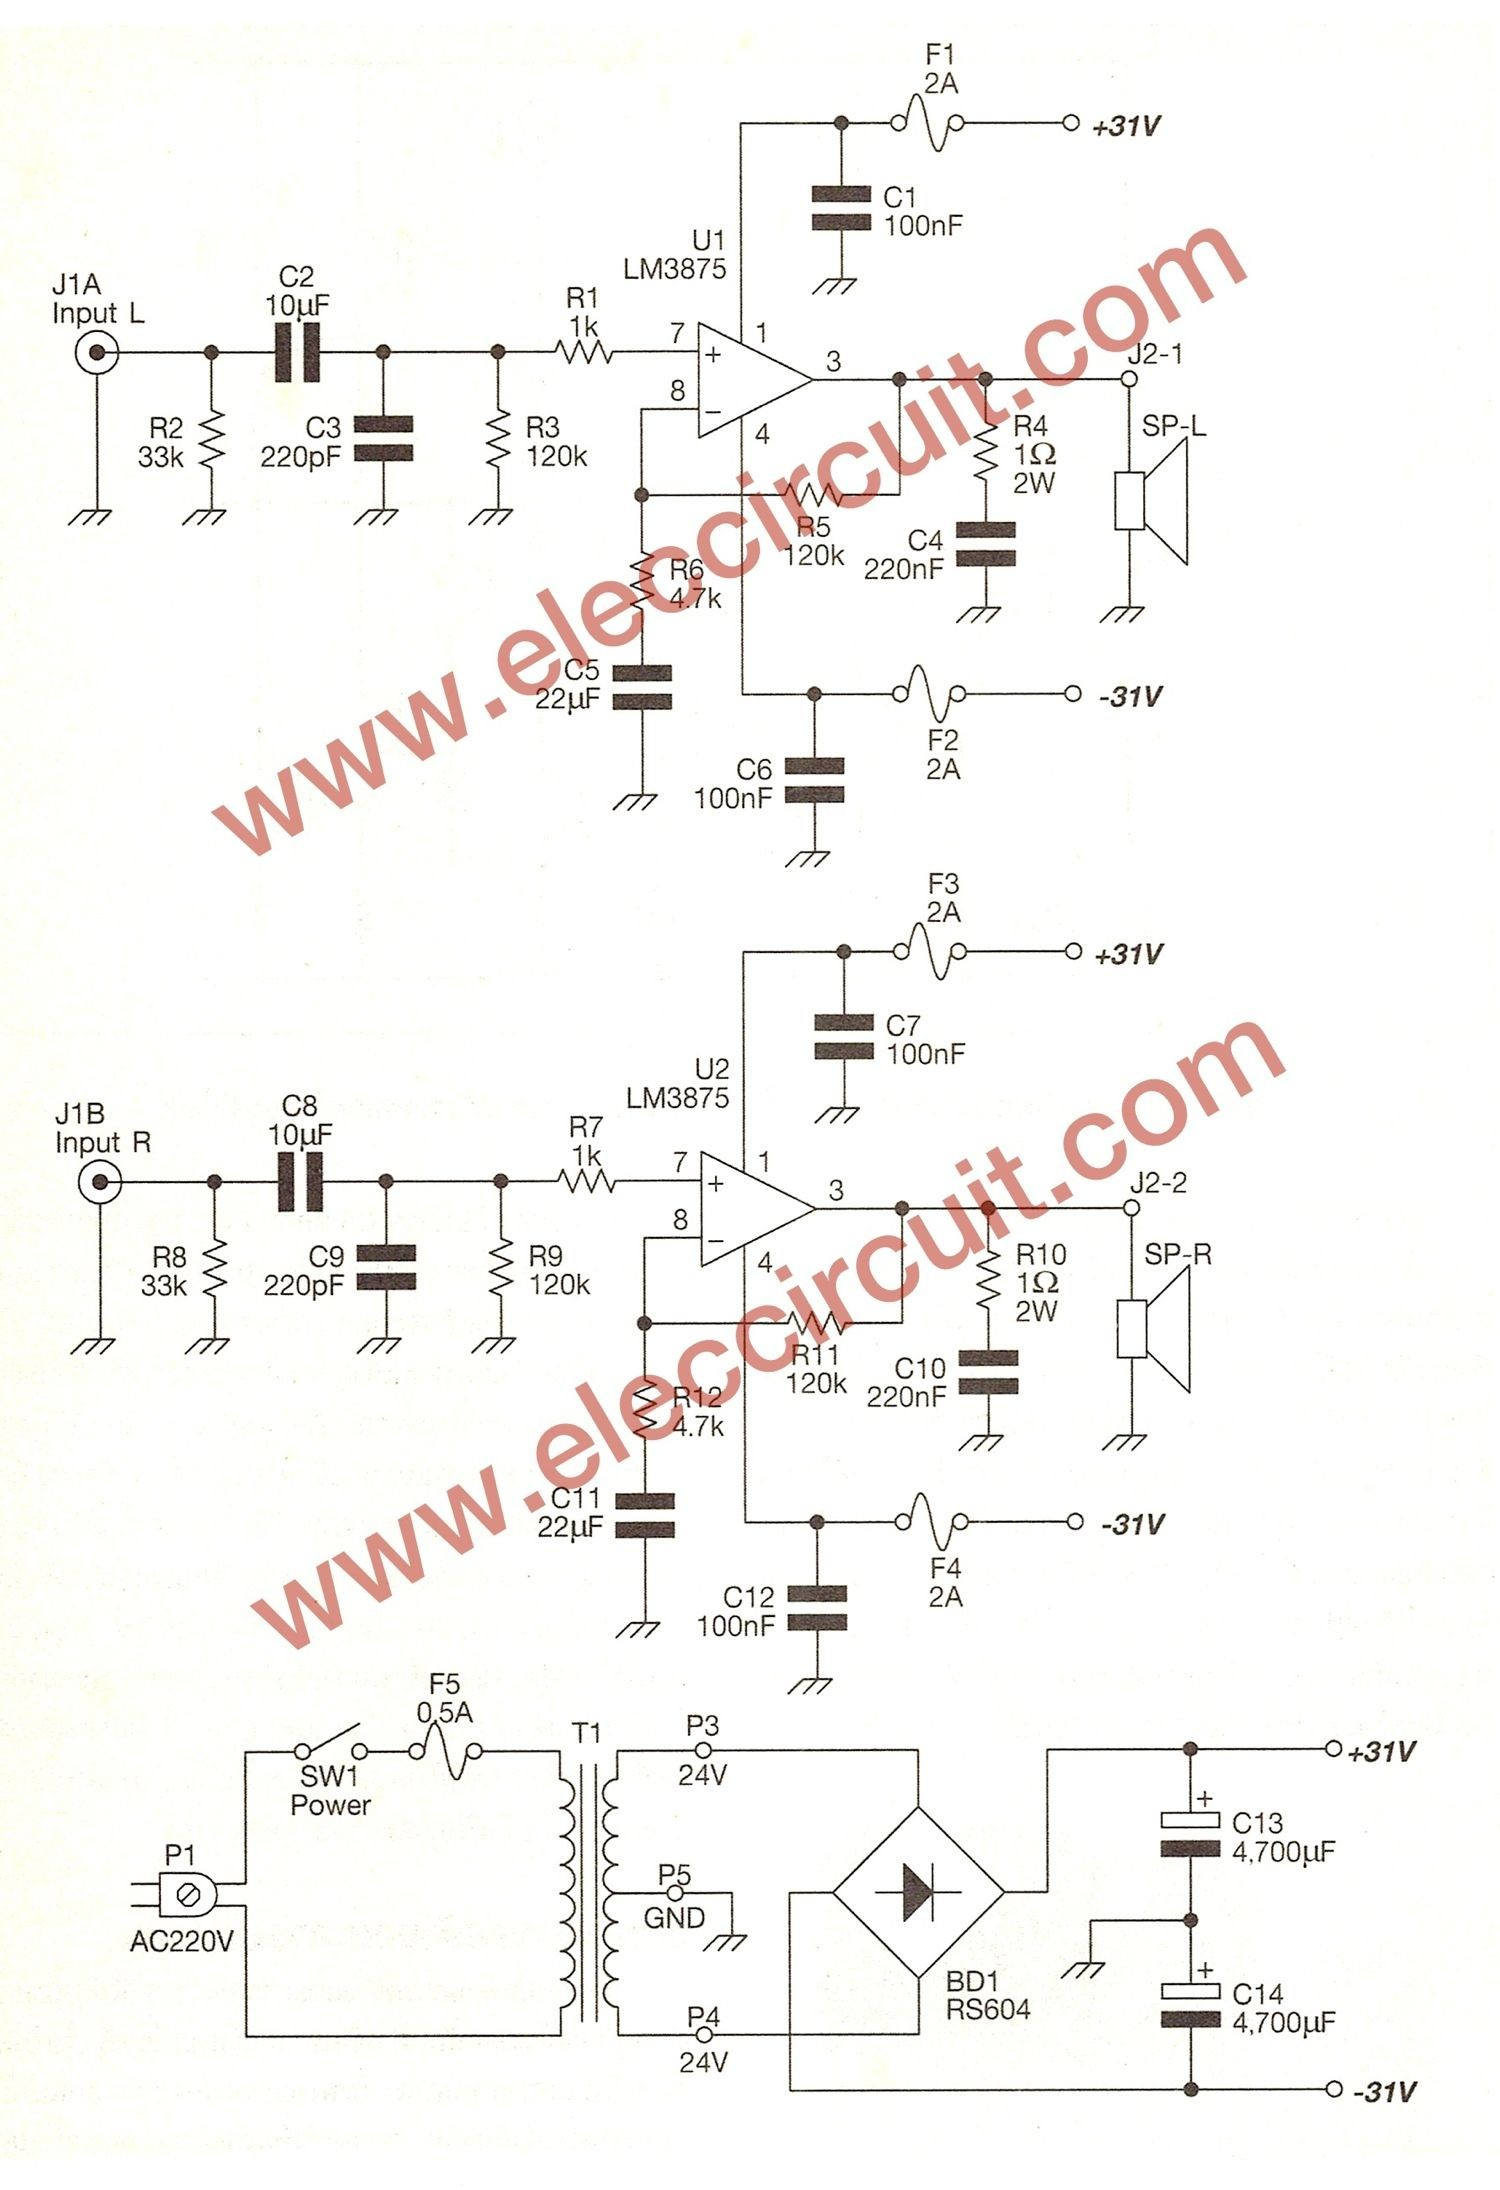 Tda 2040 40w Amp Md 6841] 40w Amplifier Circuit Schematic Of Tda 2040 40w Amp